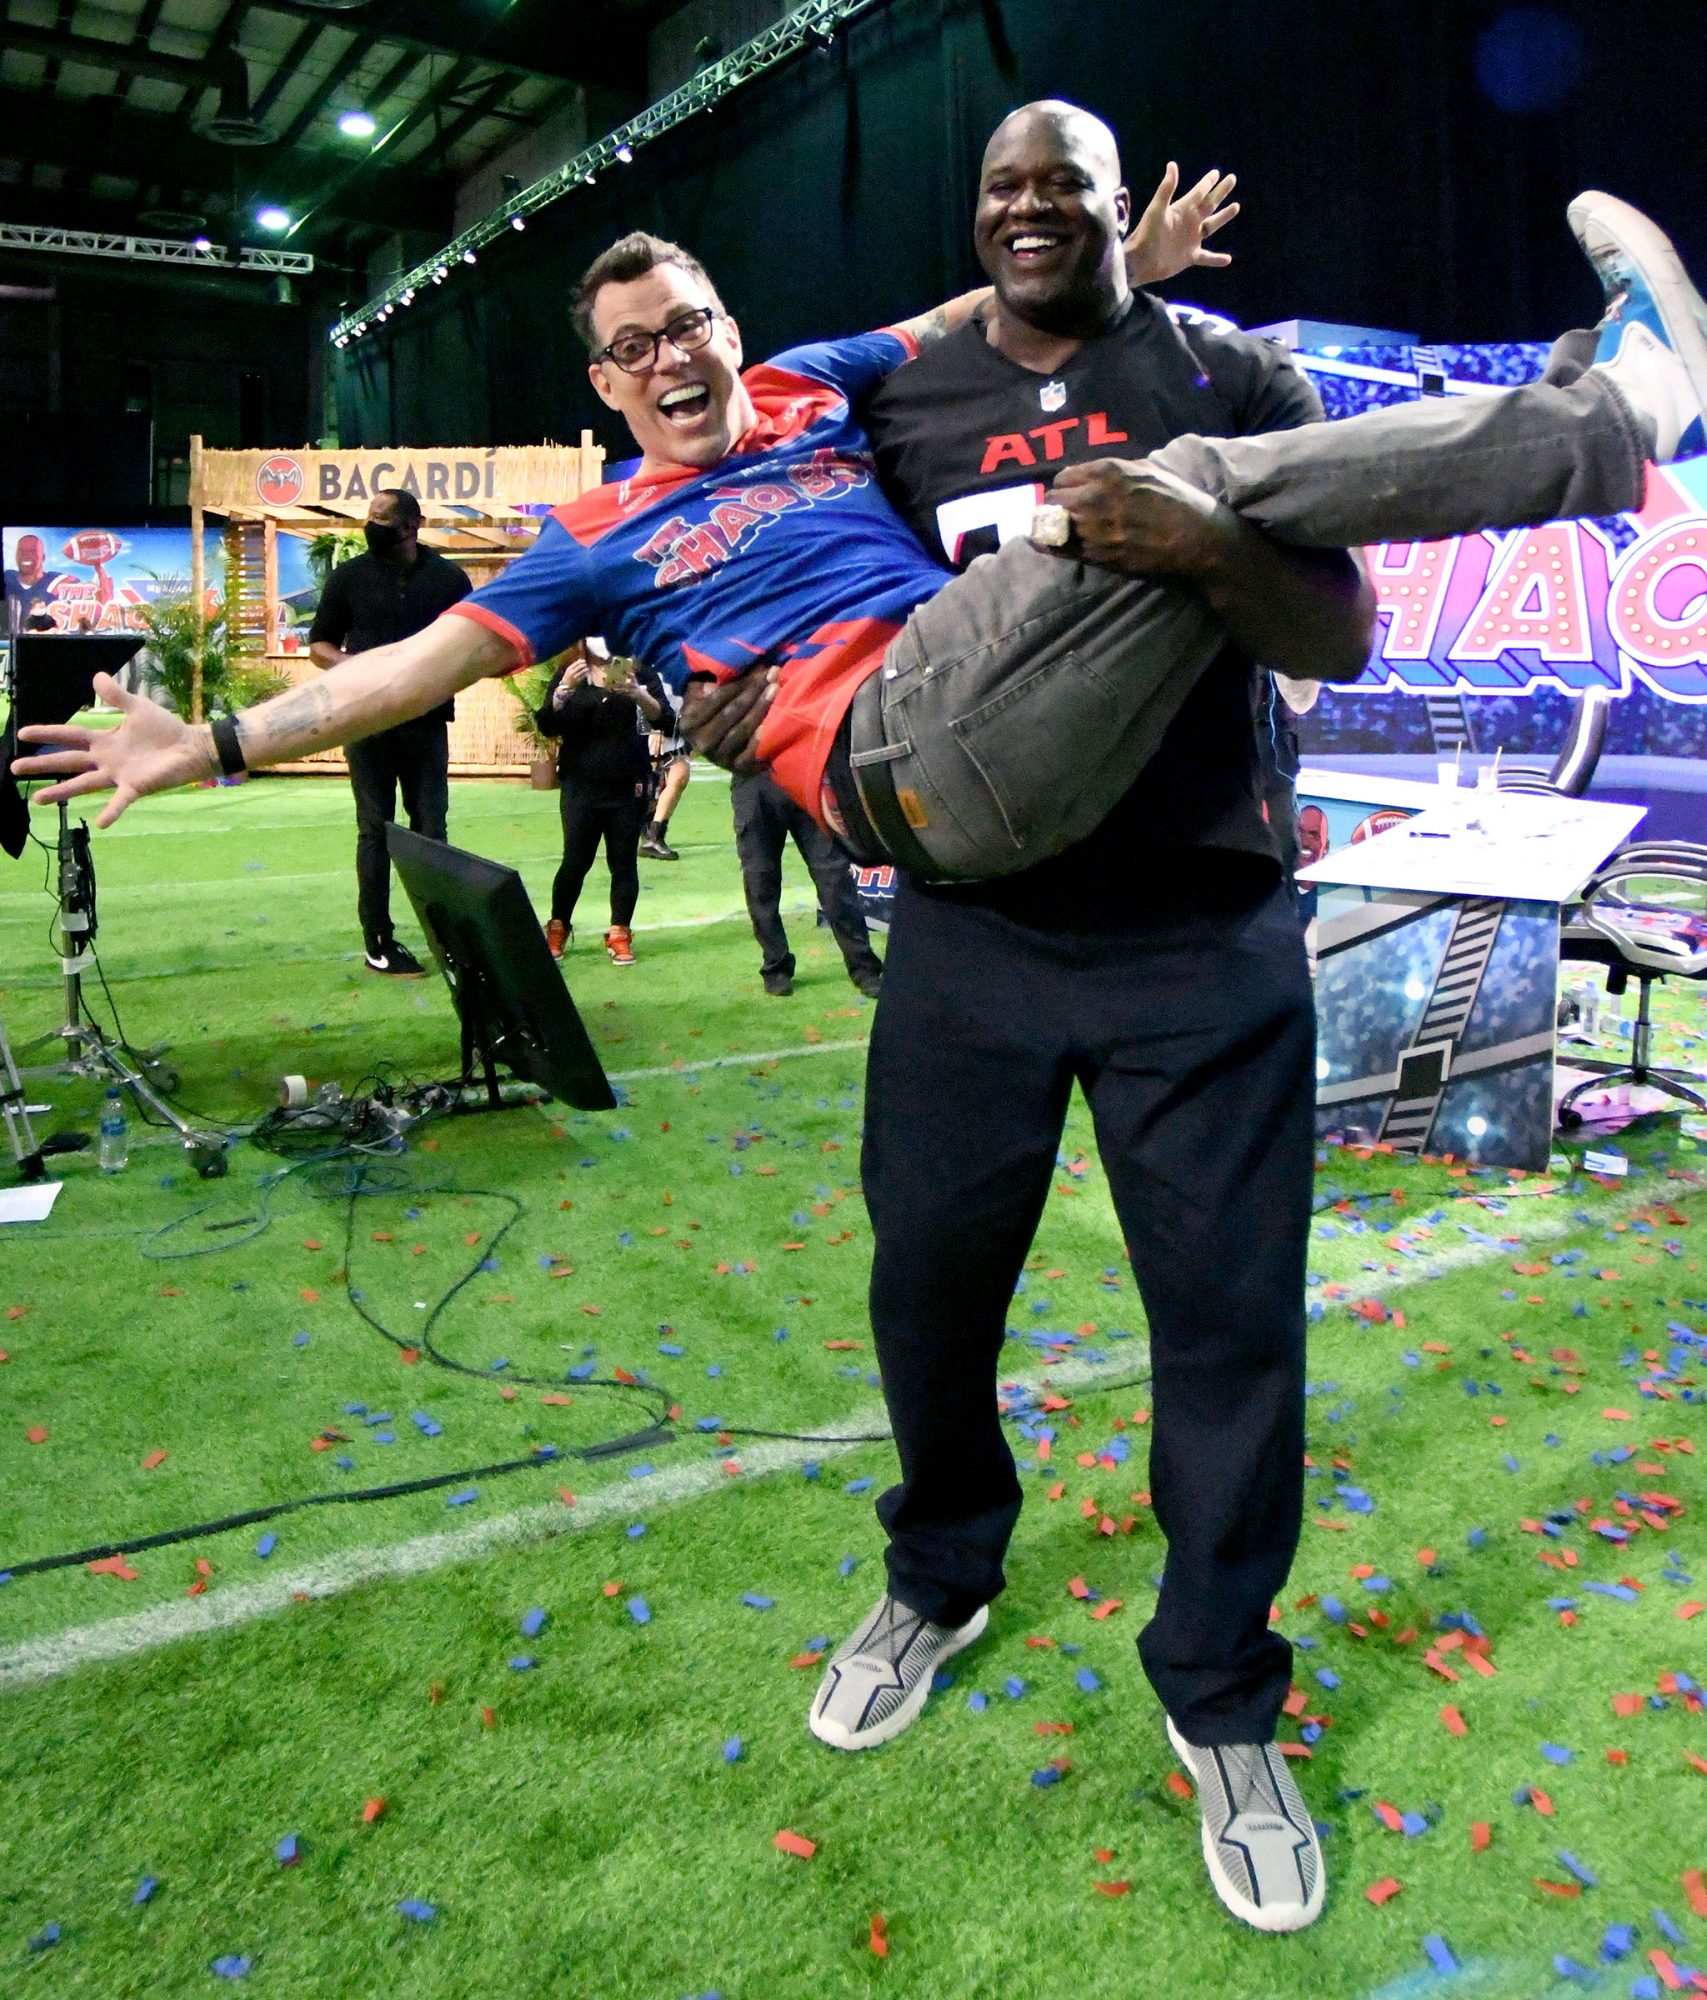 Steve-O and Shaquille O'Neal attend The SHAQ Bowl for Super Bowl LV on February 07, 2021 in Tampa, Florida